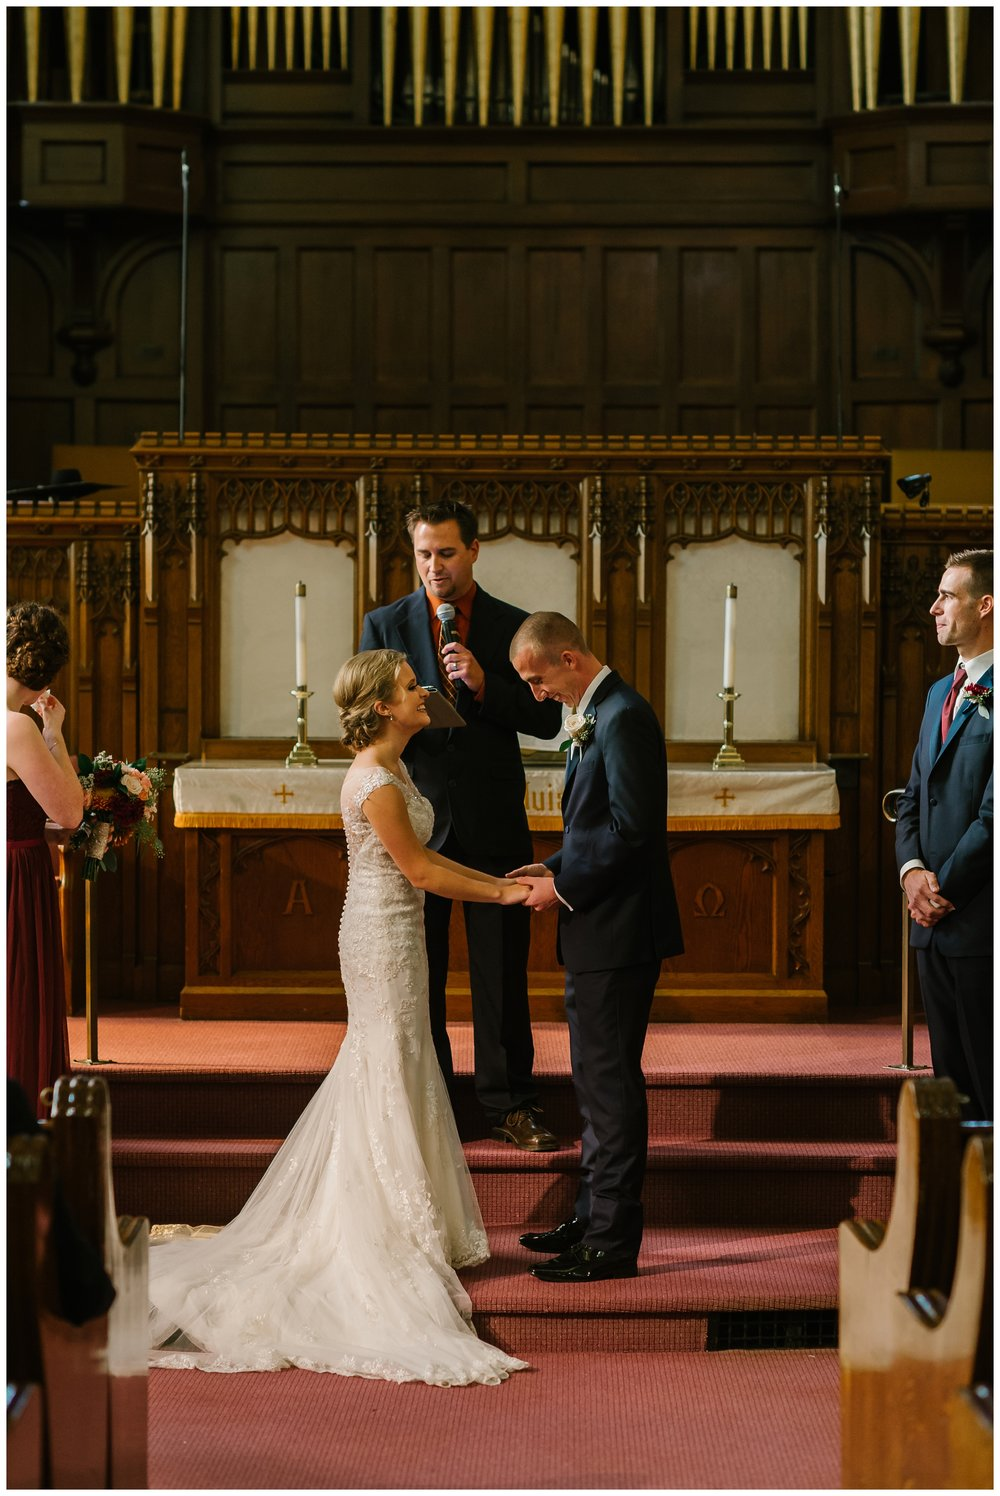 Rebecca_Shehorn_Photography_Indianapolis_Wedding_Photographer_7602.jpg